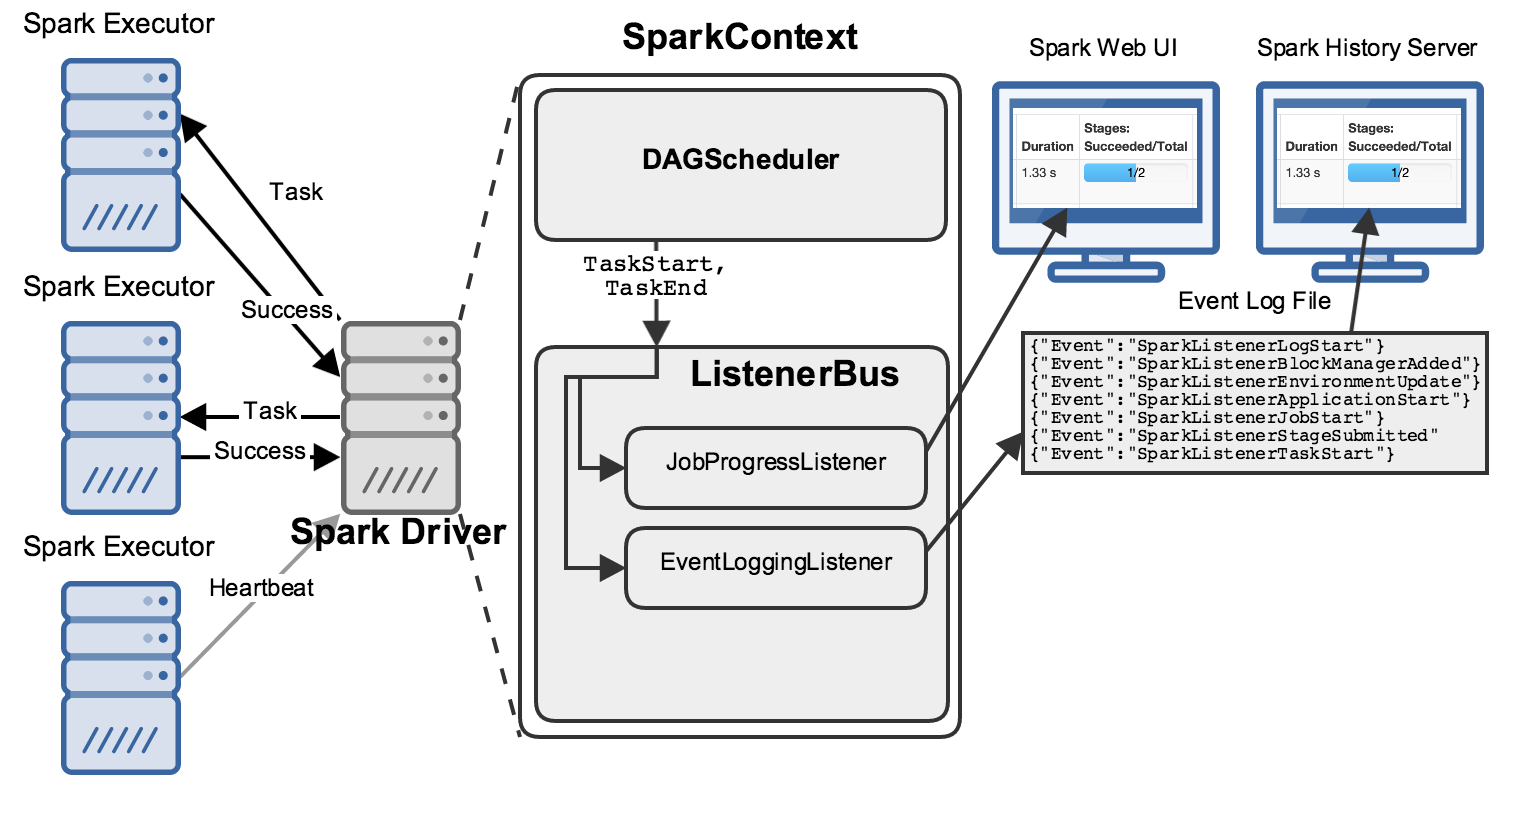 Spree: A Live-Updating Web UI for Spark · Hammer Lab